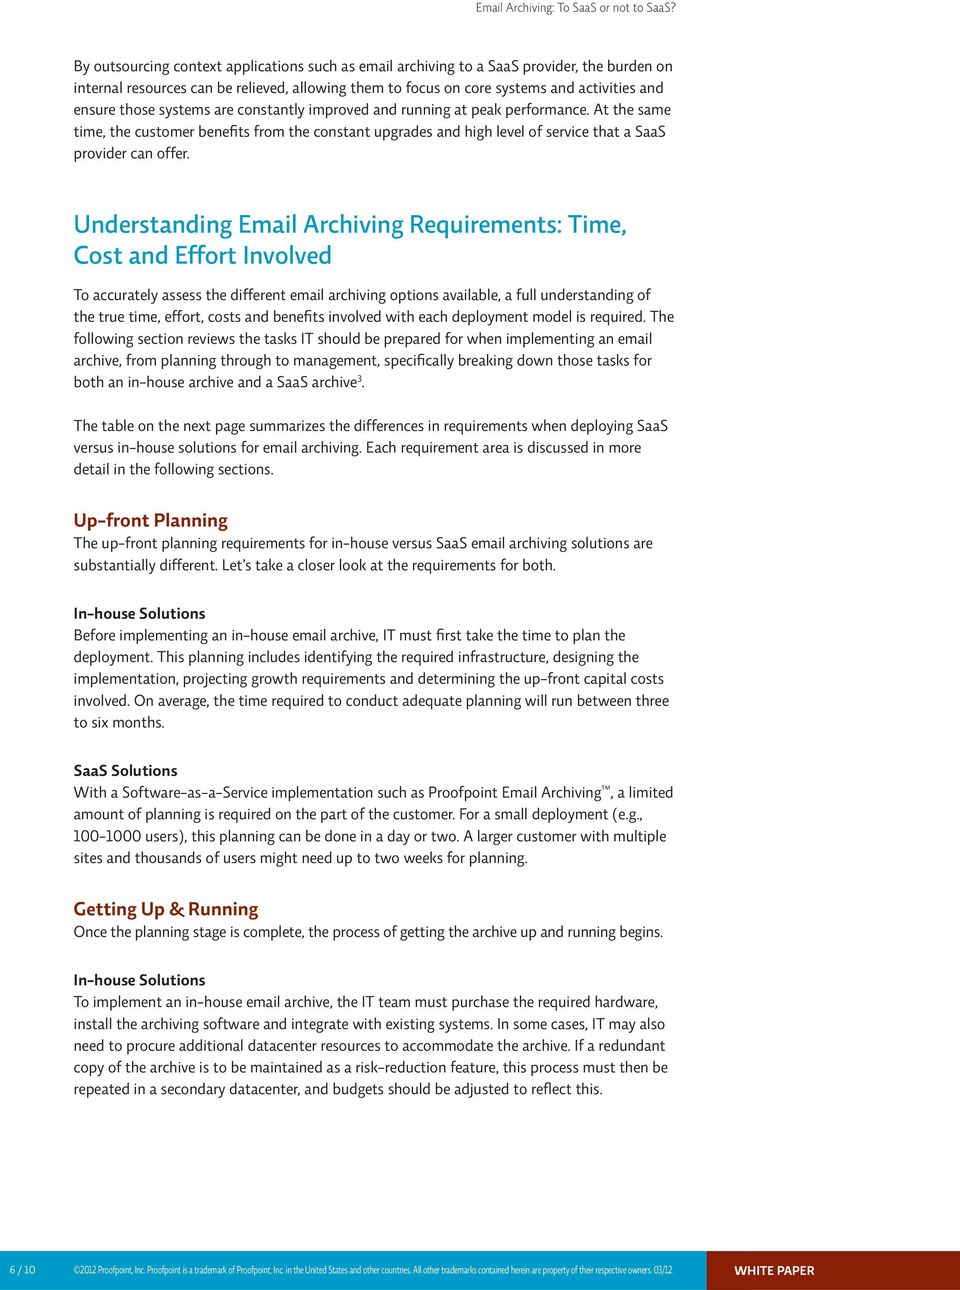 Understanding Email Archiving Requirements: Time, Cost and Effort Involved To accurately assess the different email archiving options available, a full understanding of the true time, effort, costs